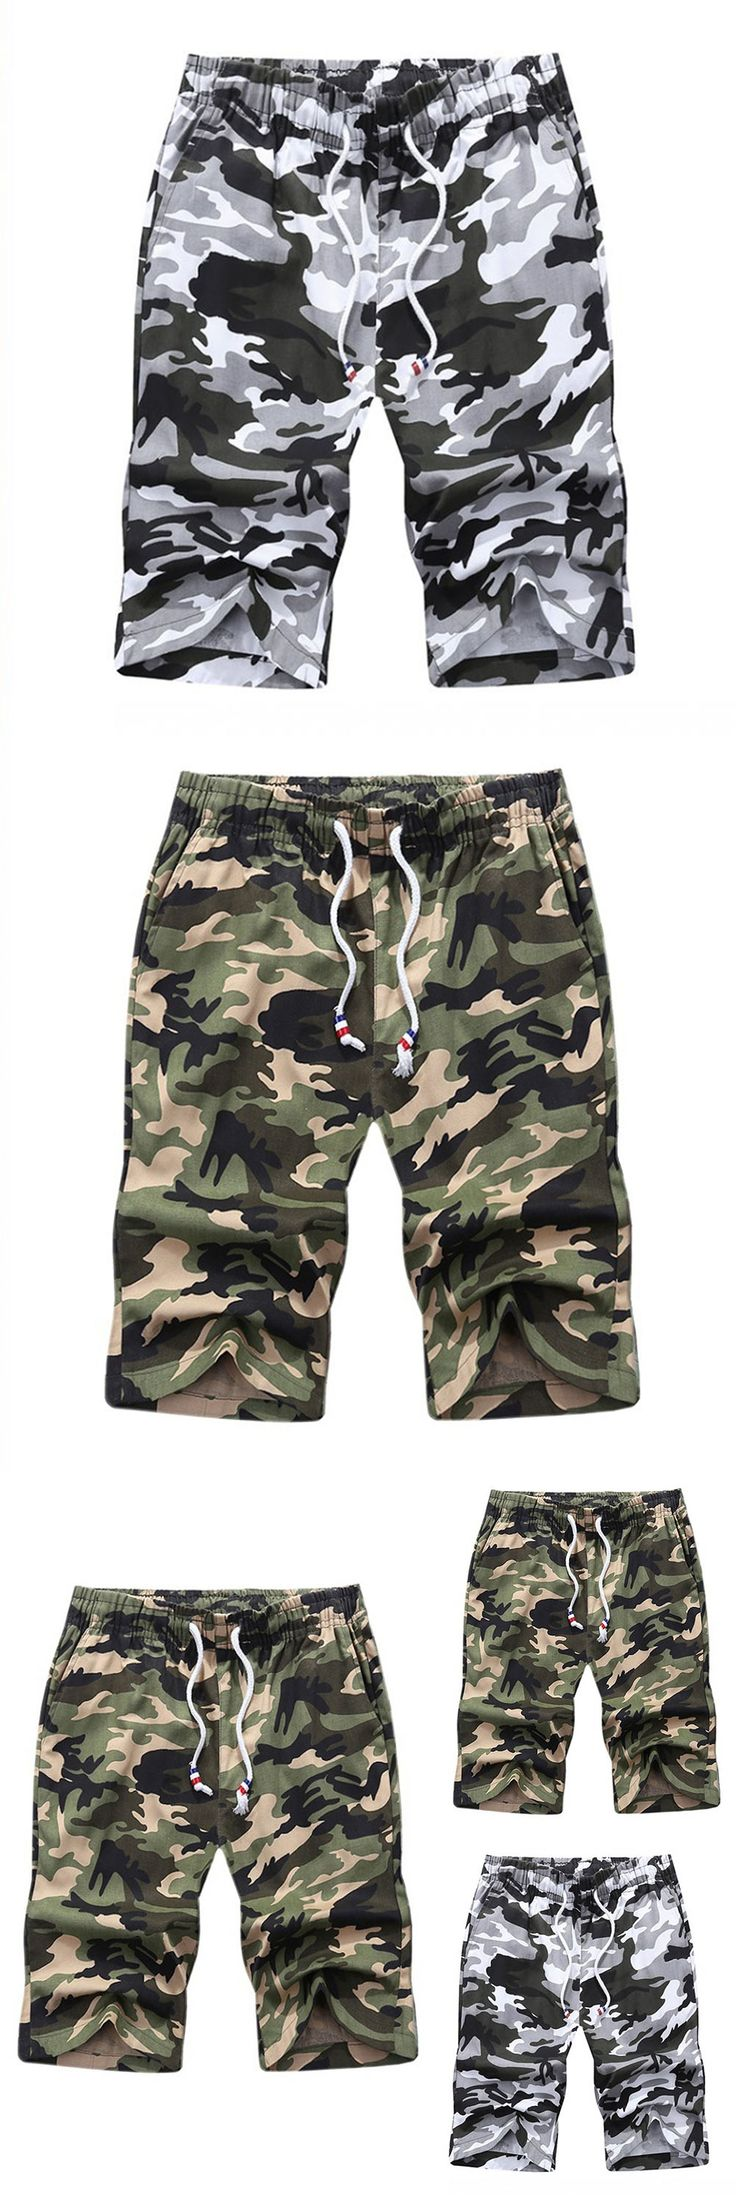 New Summer Style Casual Fashion Men's Shorts Straight Knee Length Camouflage Brand Clothing Hot Sale Plus Size